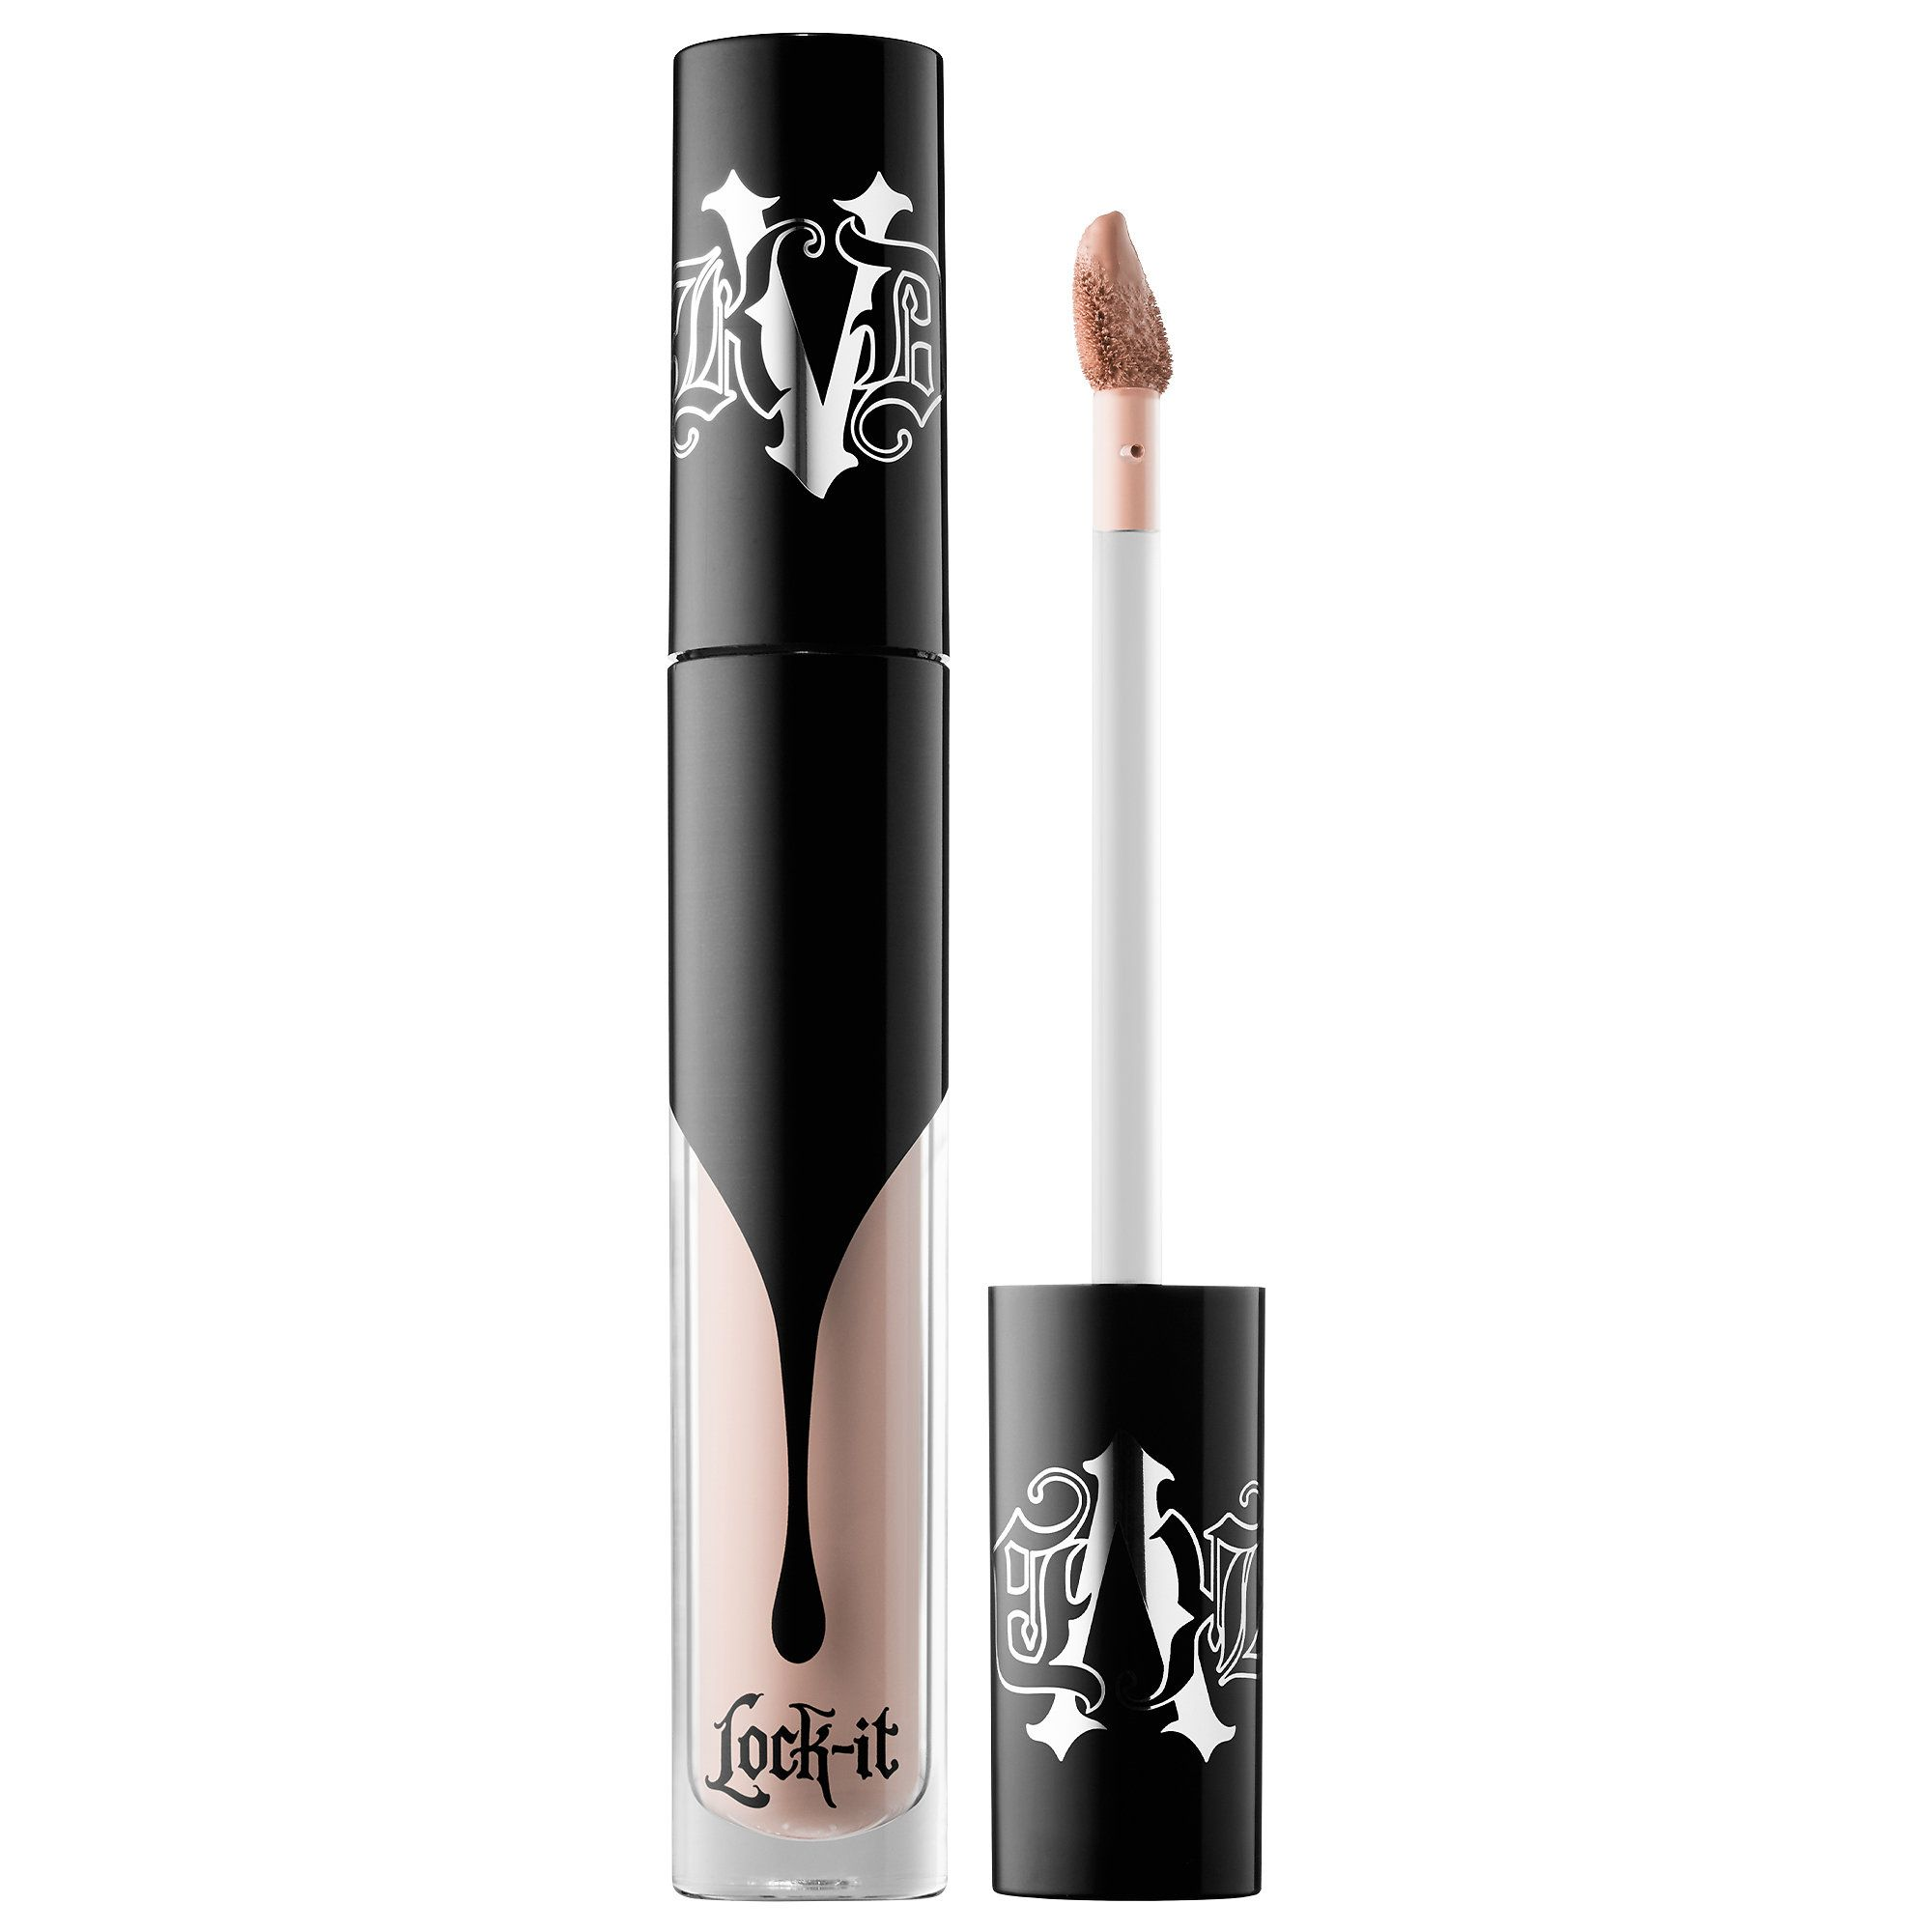 Shop Kat Von D's Lock-It Concealer Crème at Sephora. It conceals imperfections and provides full coverage for 24 hours.